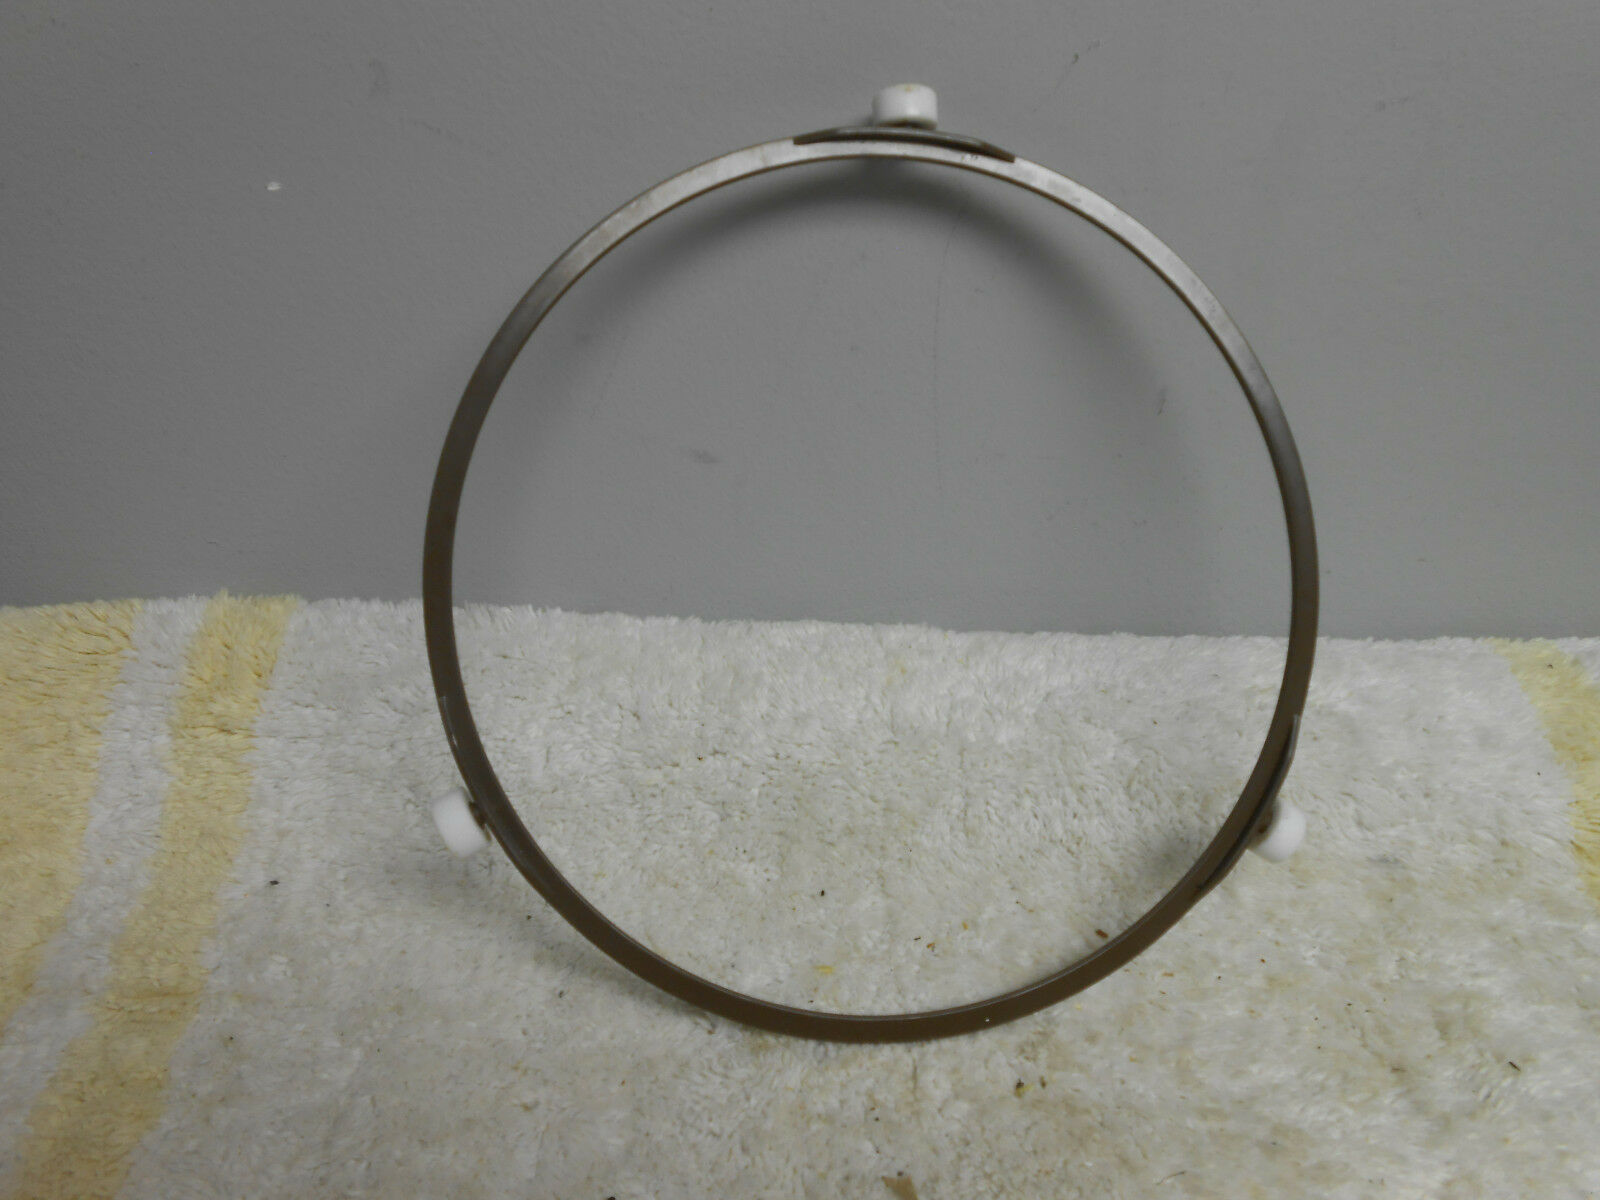 Amana Microwave Oven Roller Ring R0713721  - $18.99